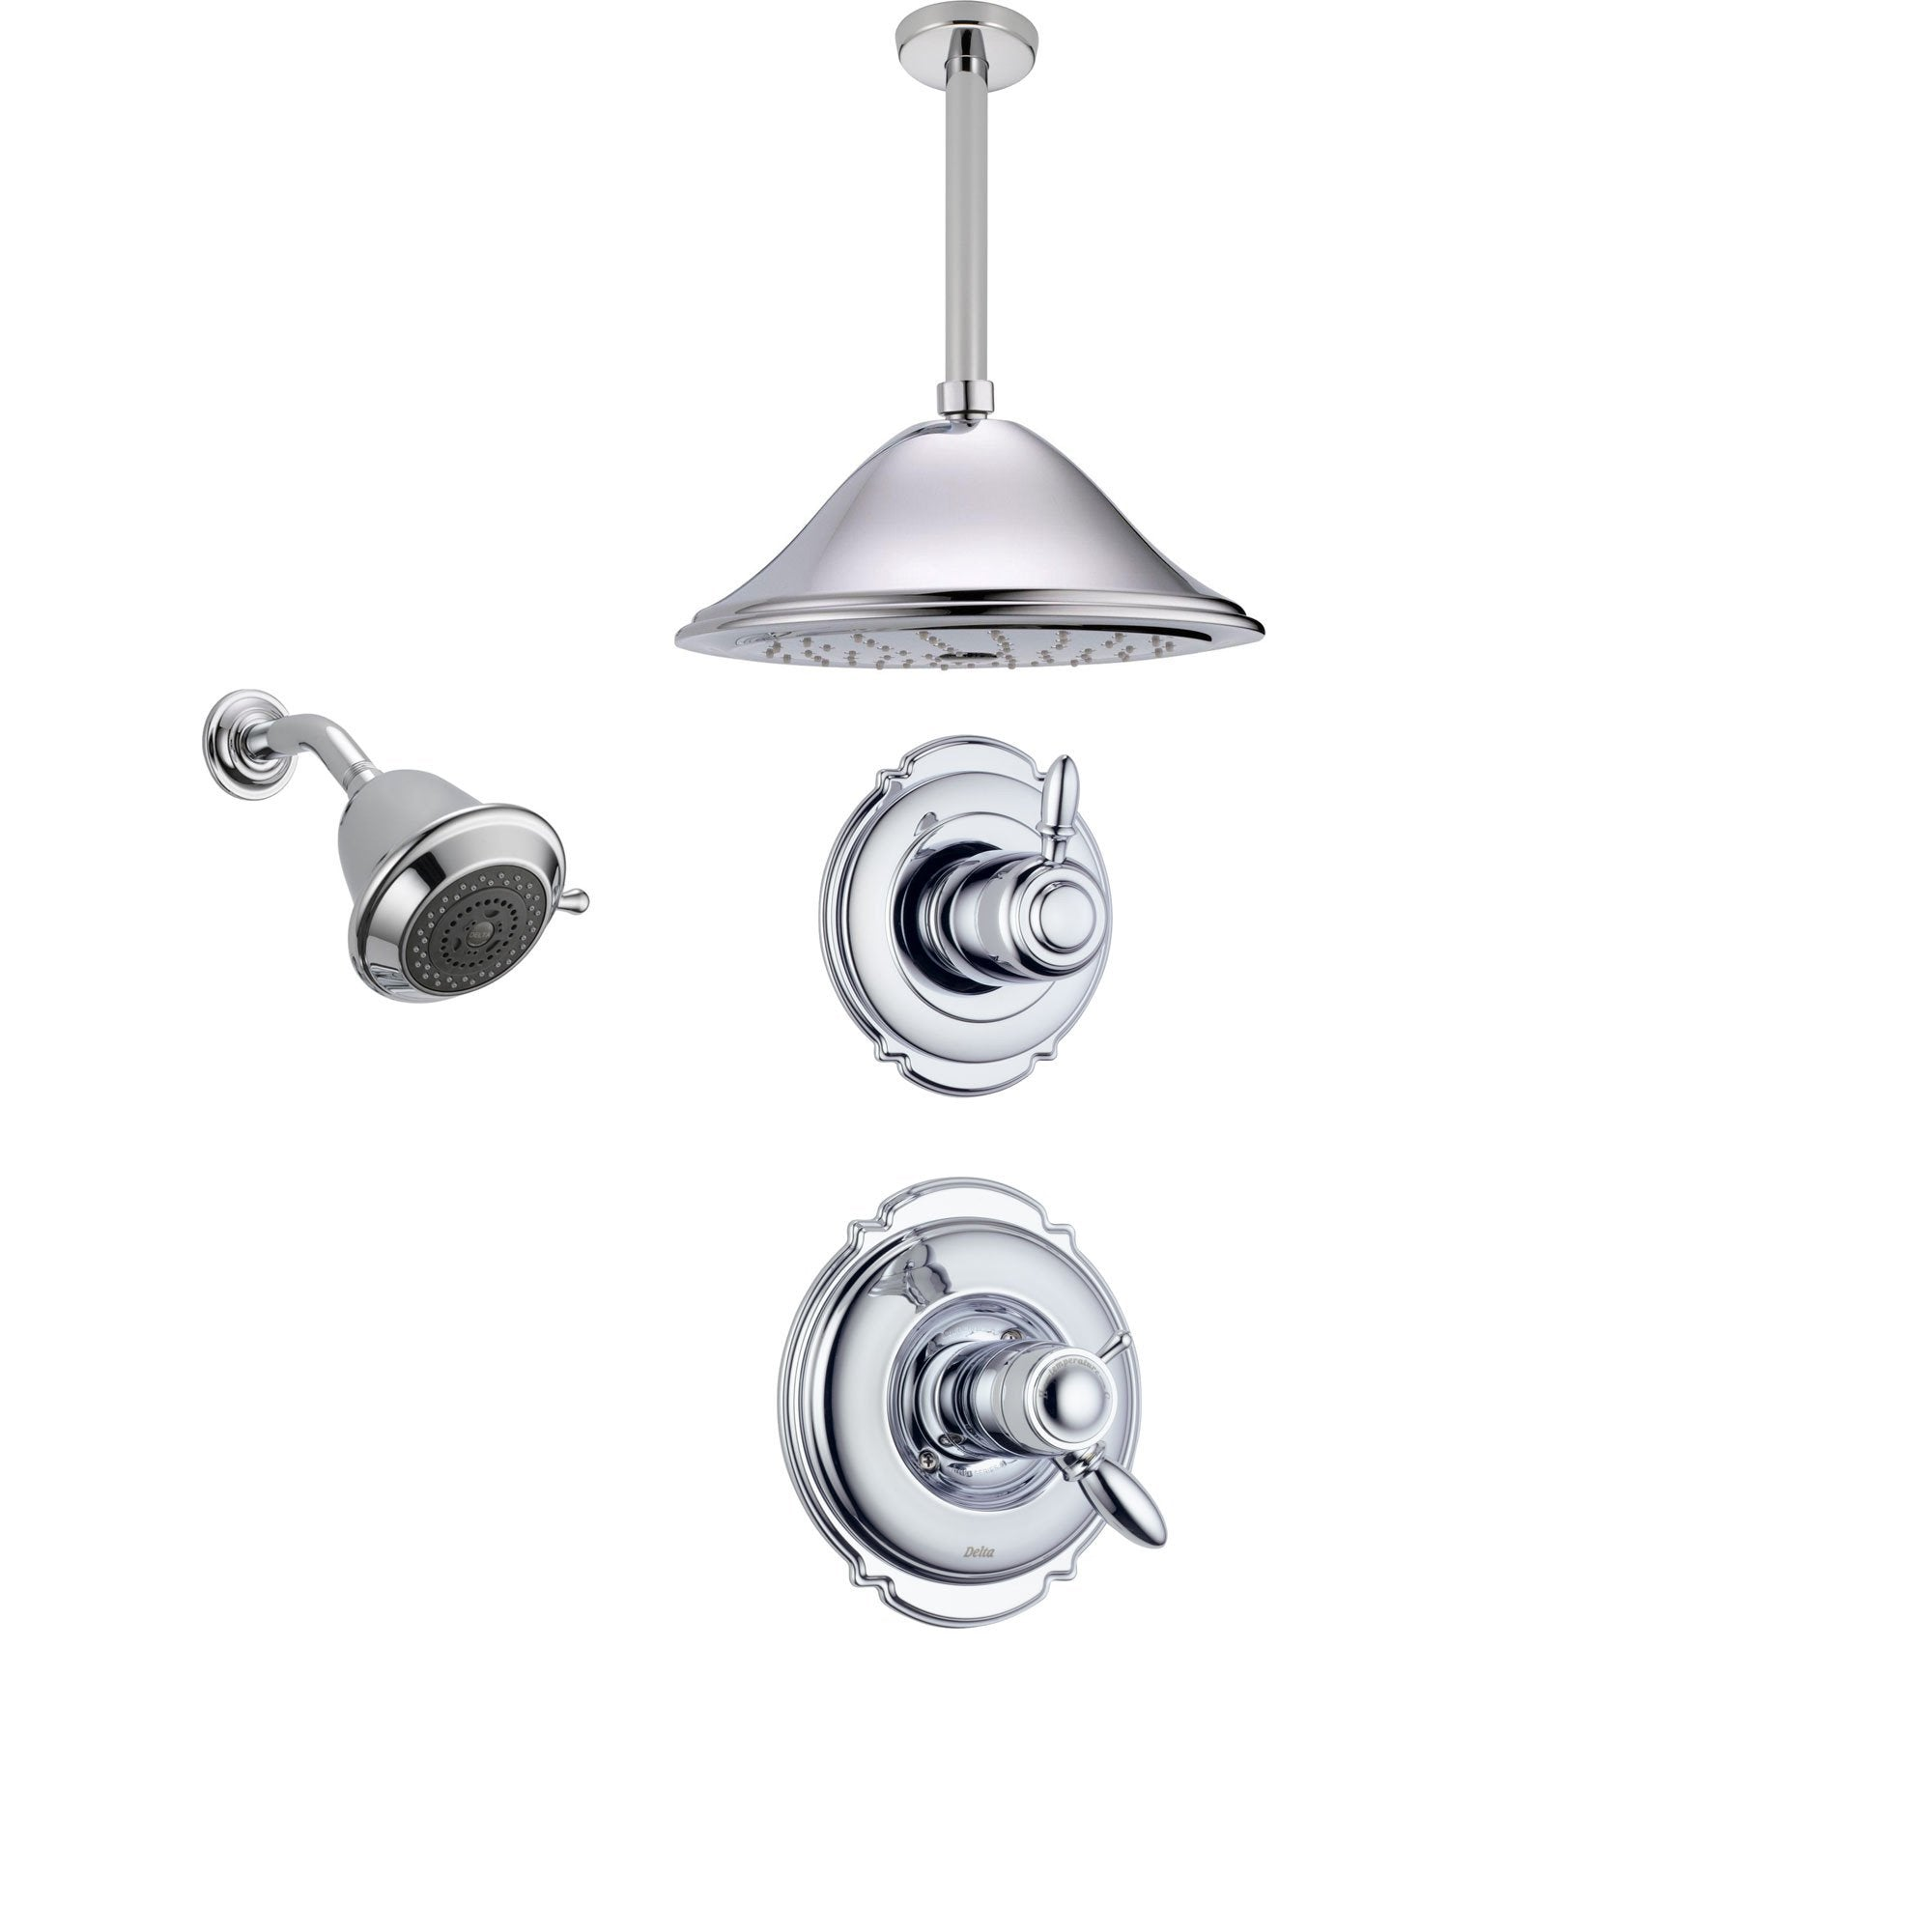 Delta Victorian Chrome Shower System with Thermostatic Shower Handle, 3-setting Diverter, Large Ceiling Mount Rain Showerhead, and Wall Mount Showerhead SS17T5583